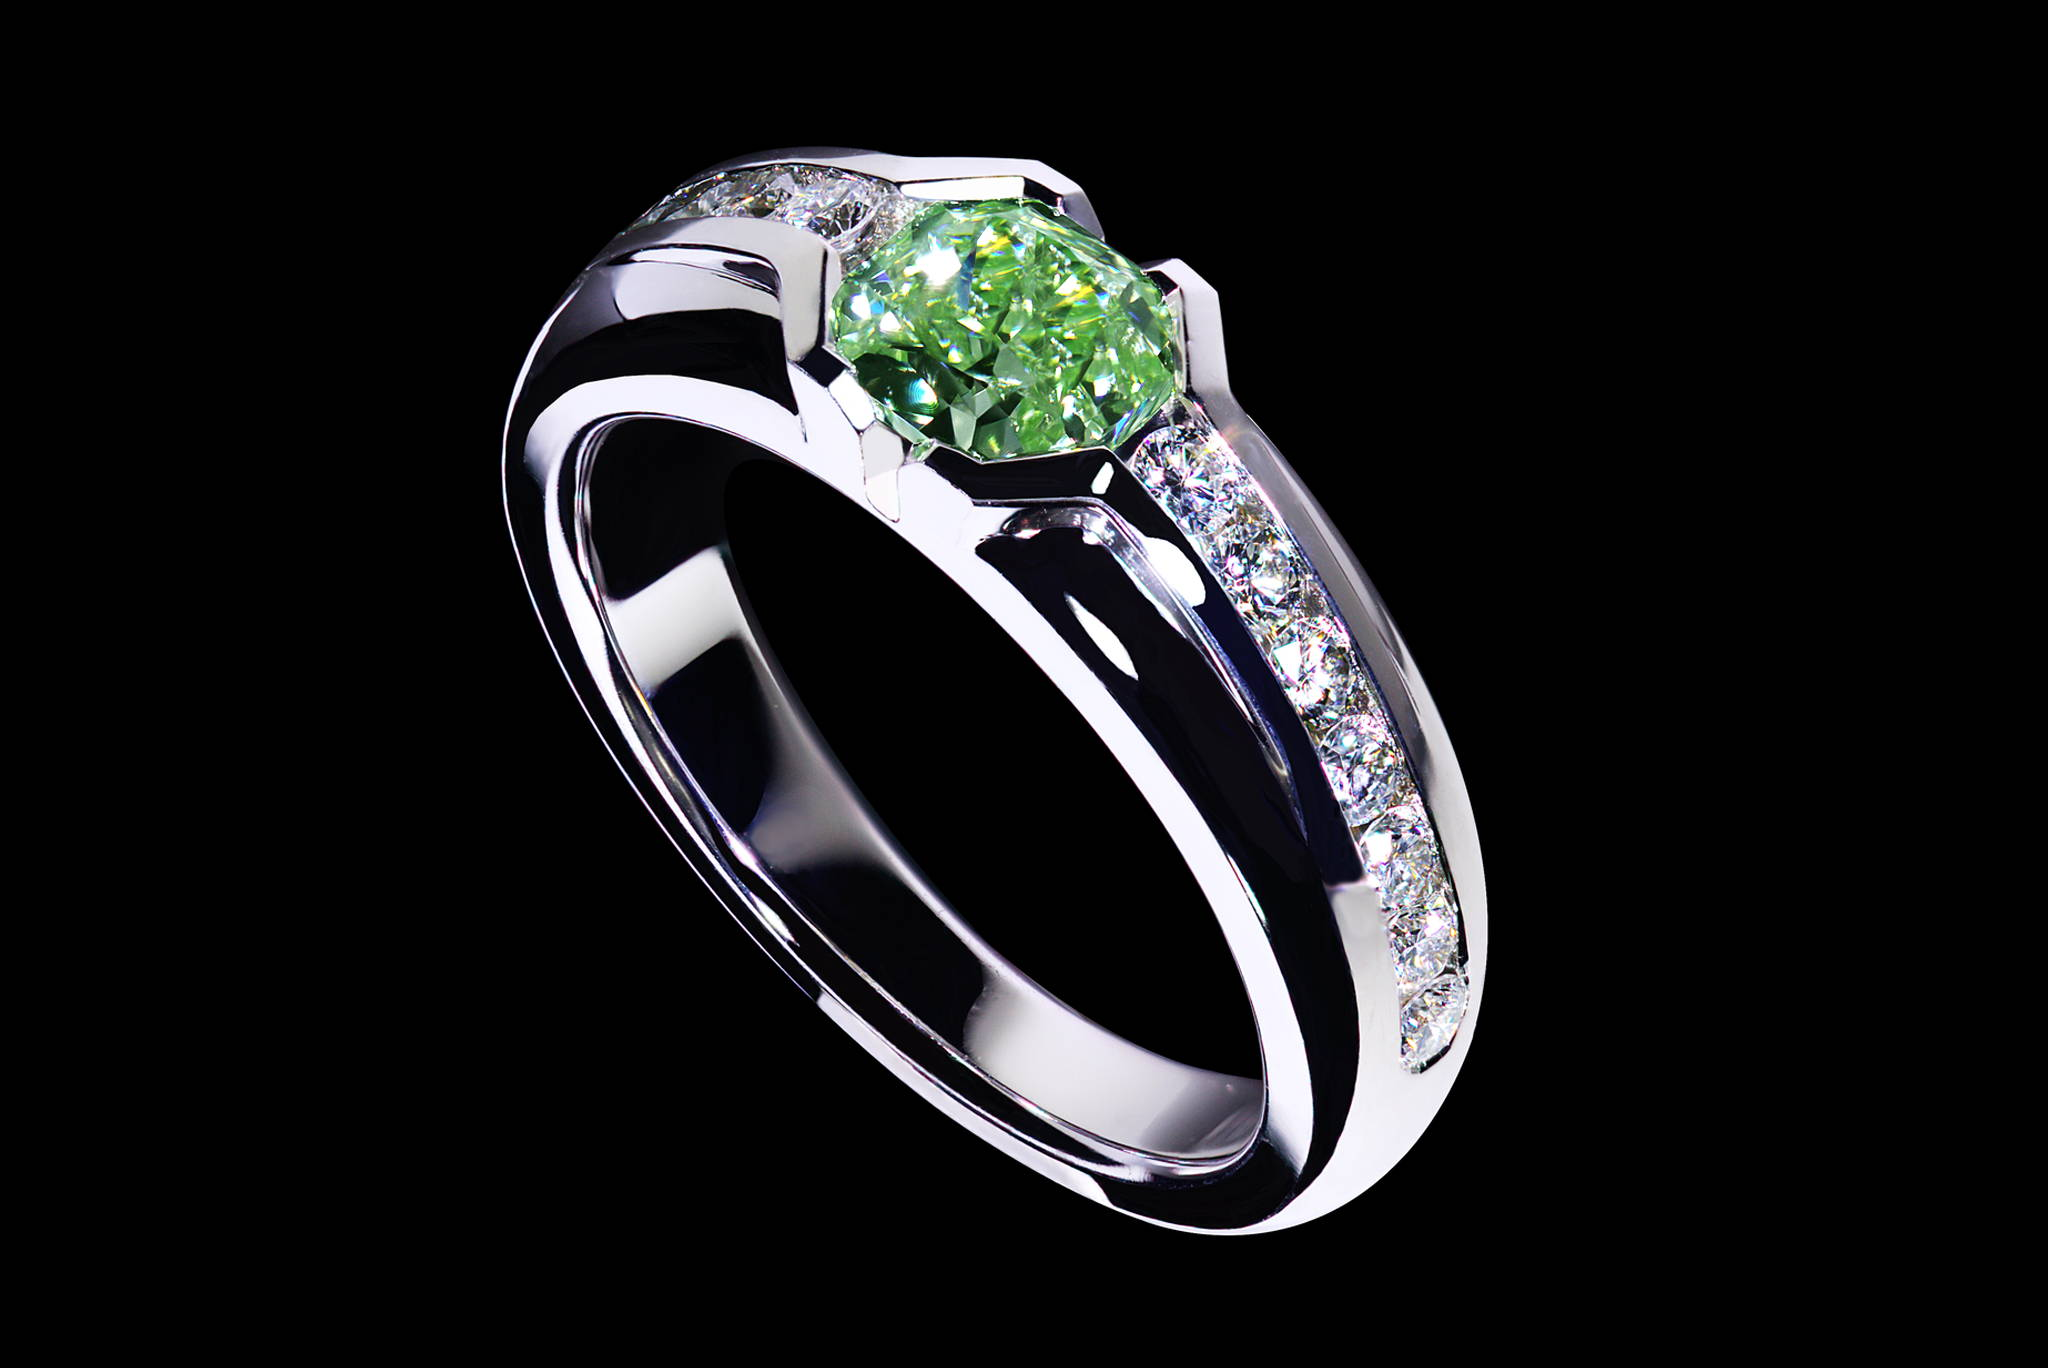 Rare Investment Grade Vivid Green Diamond Ring